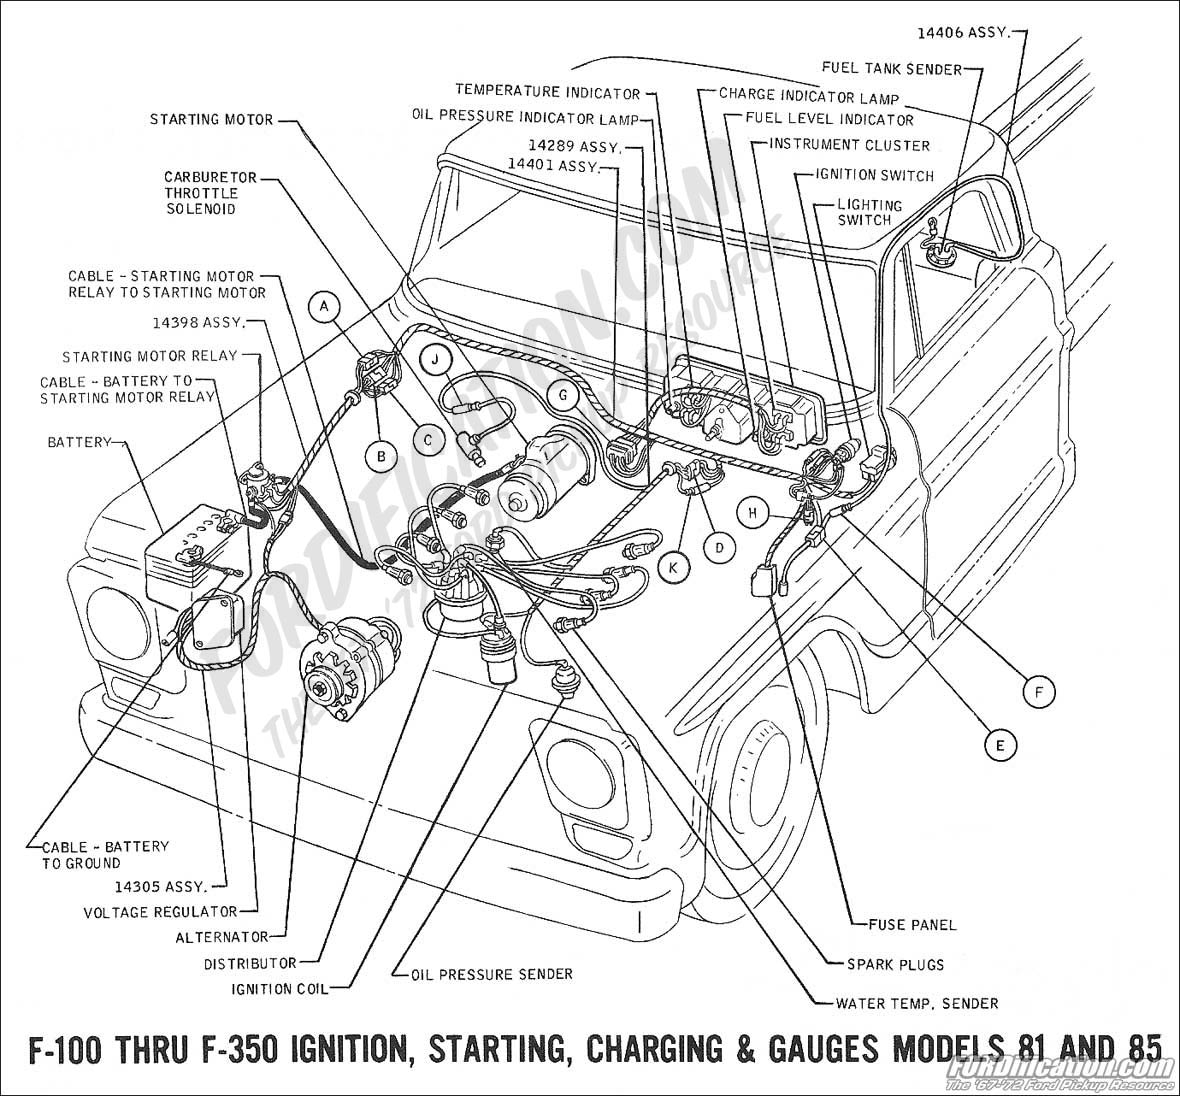 1967 Ford F100 Turn Signal Wiring Diagram Library Schematic 1969 Chevy Truck Get Free